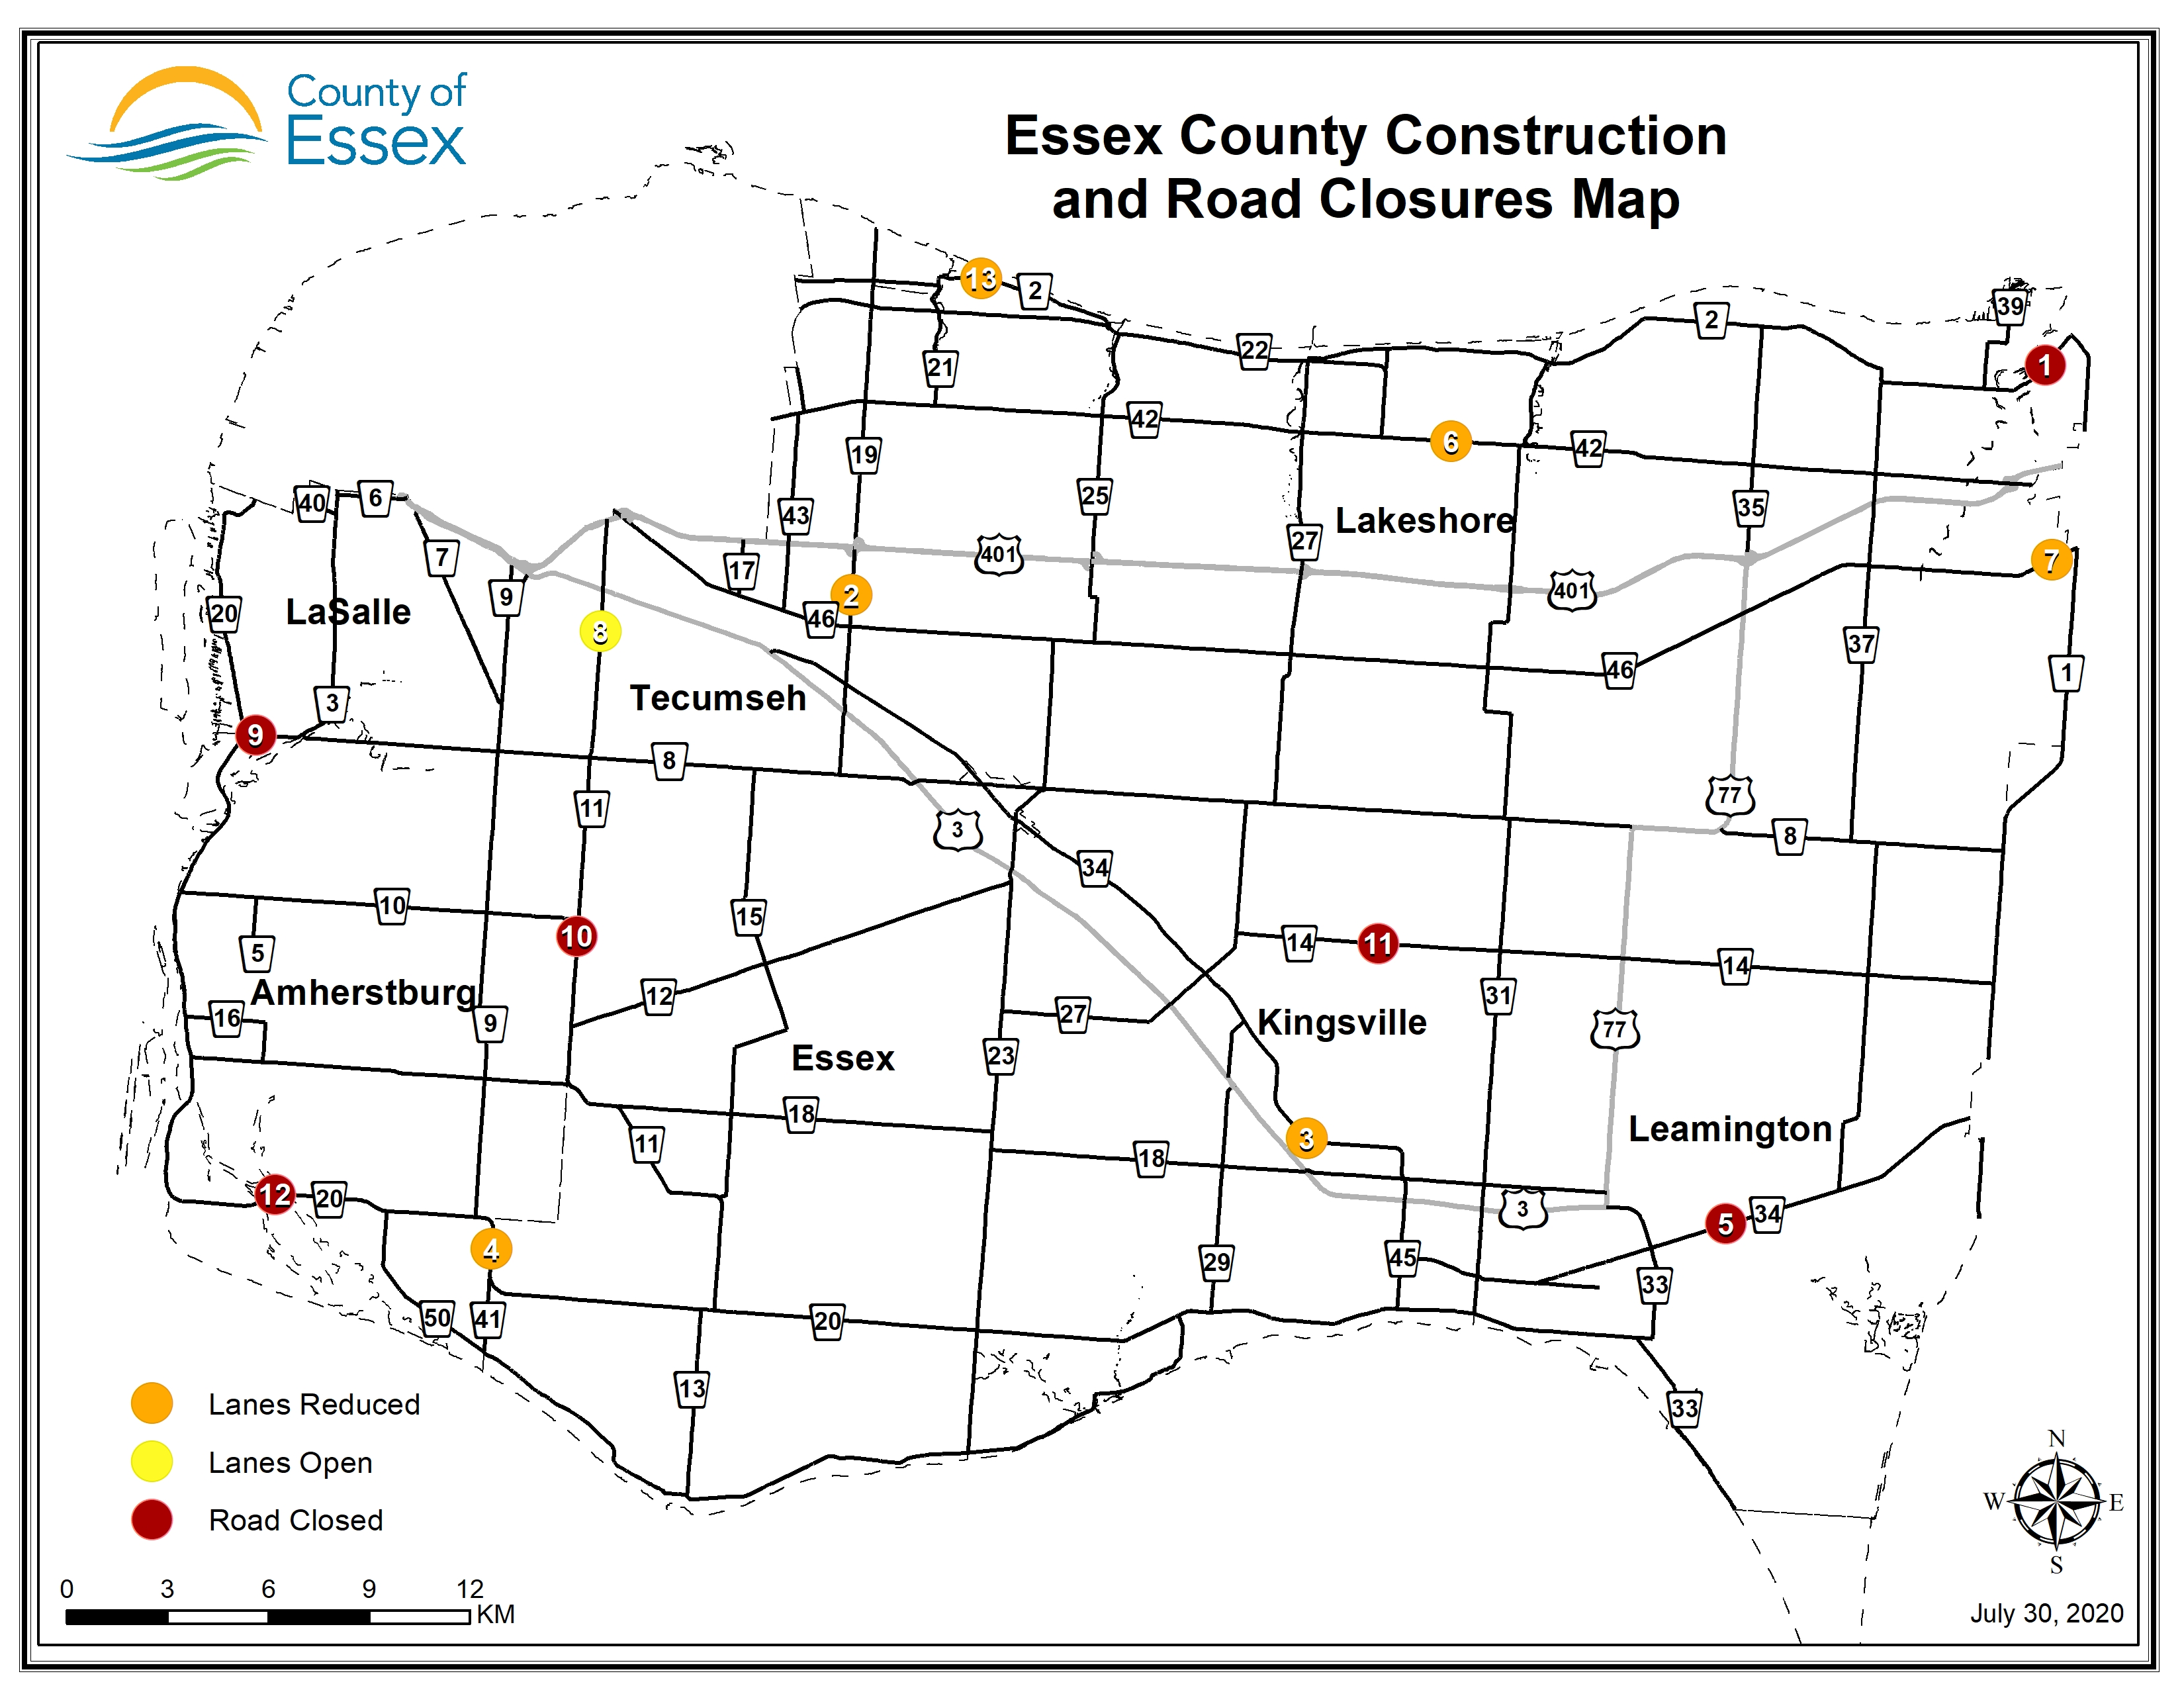 A map of Essex County showing road closures and lane restrictions for July 30, 2020.